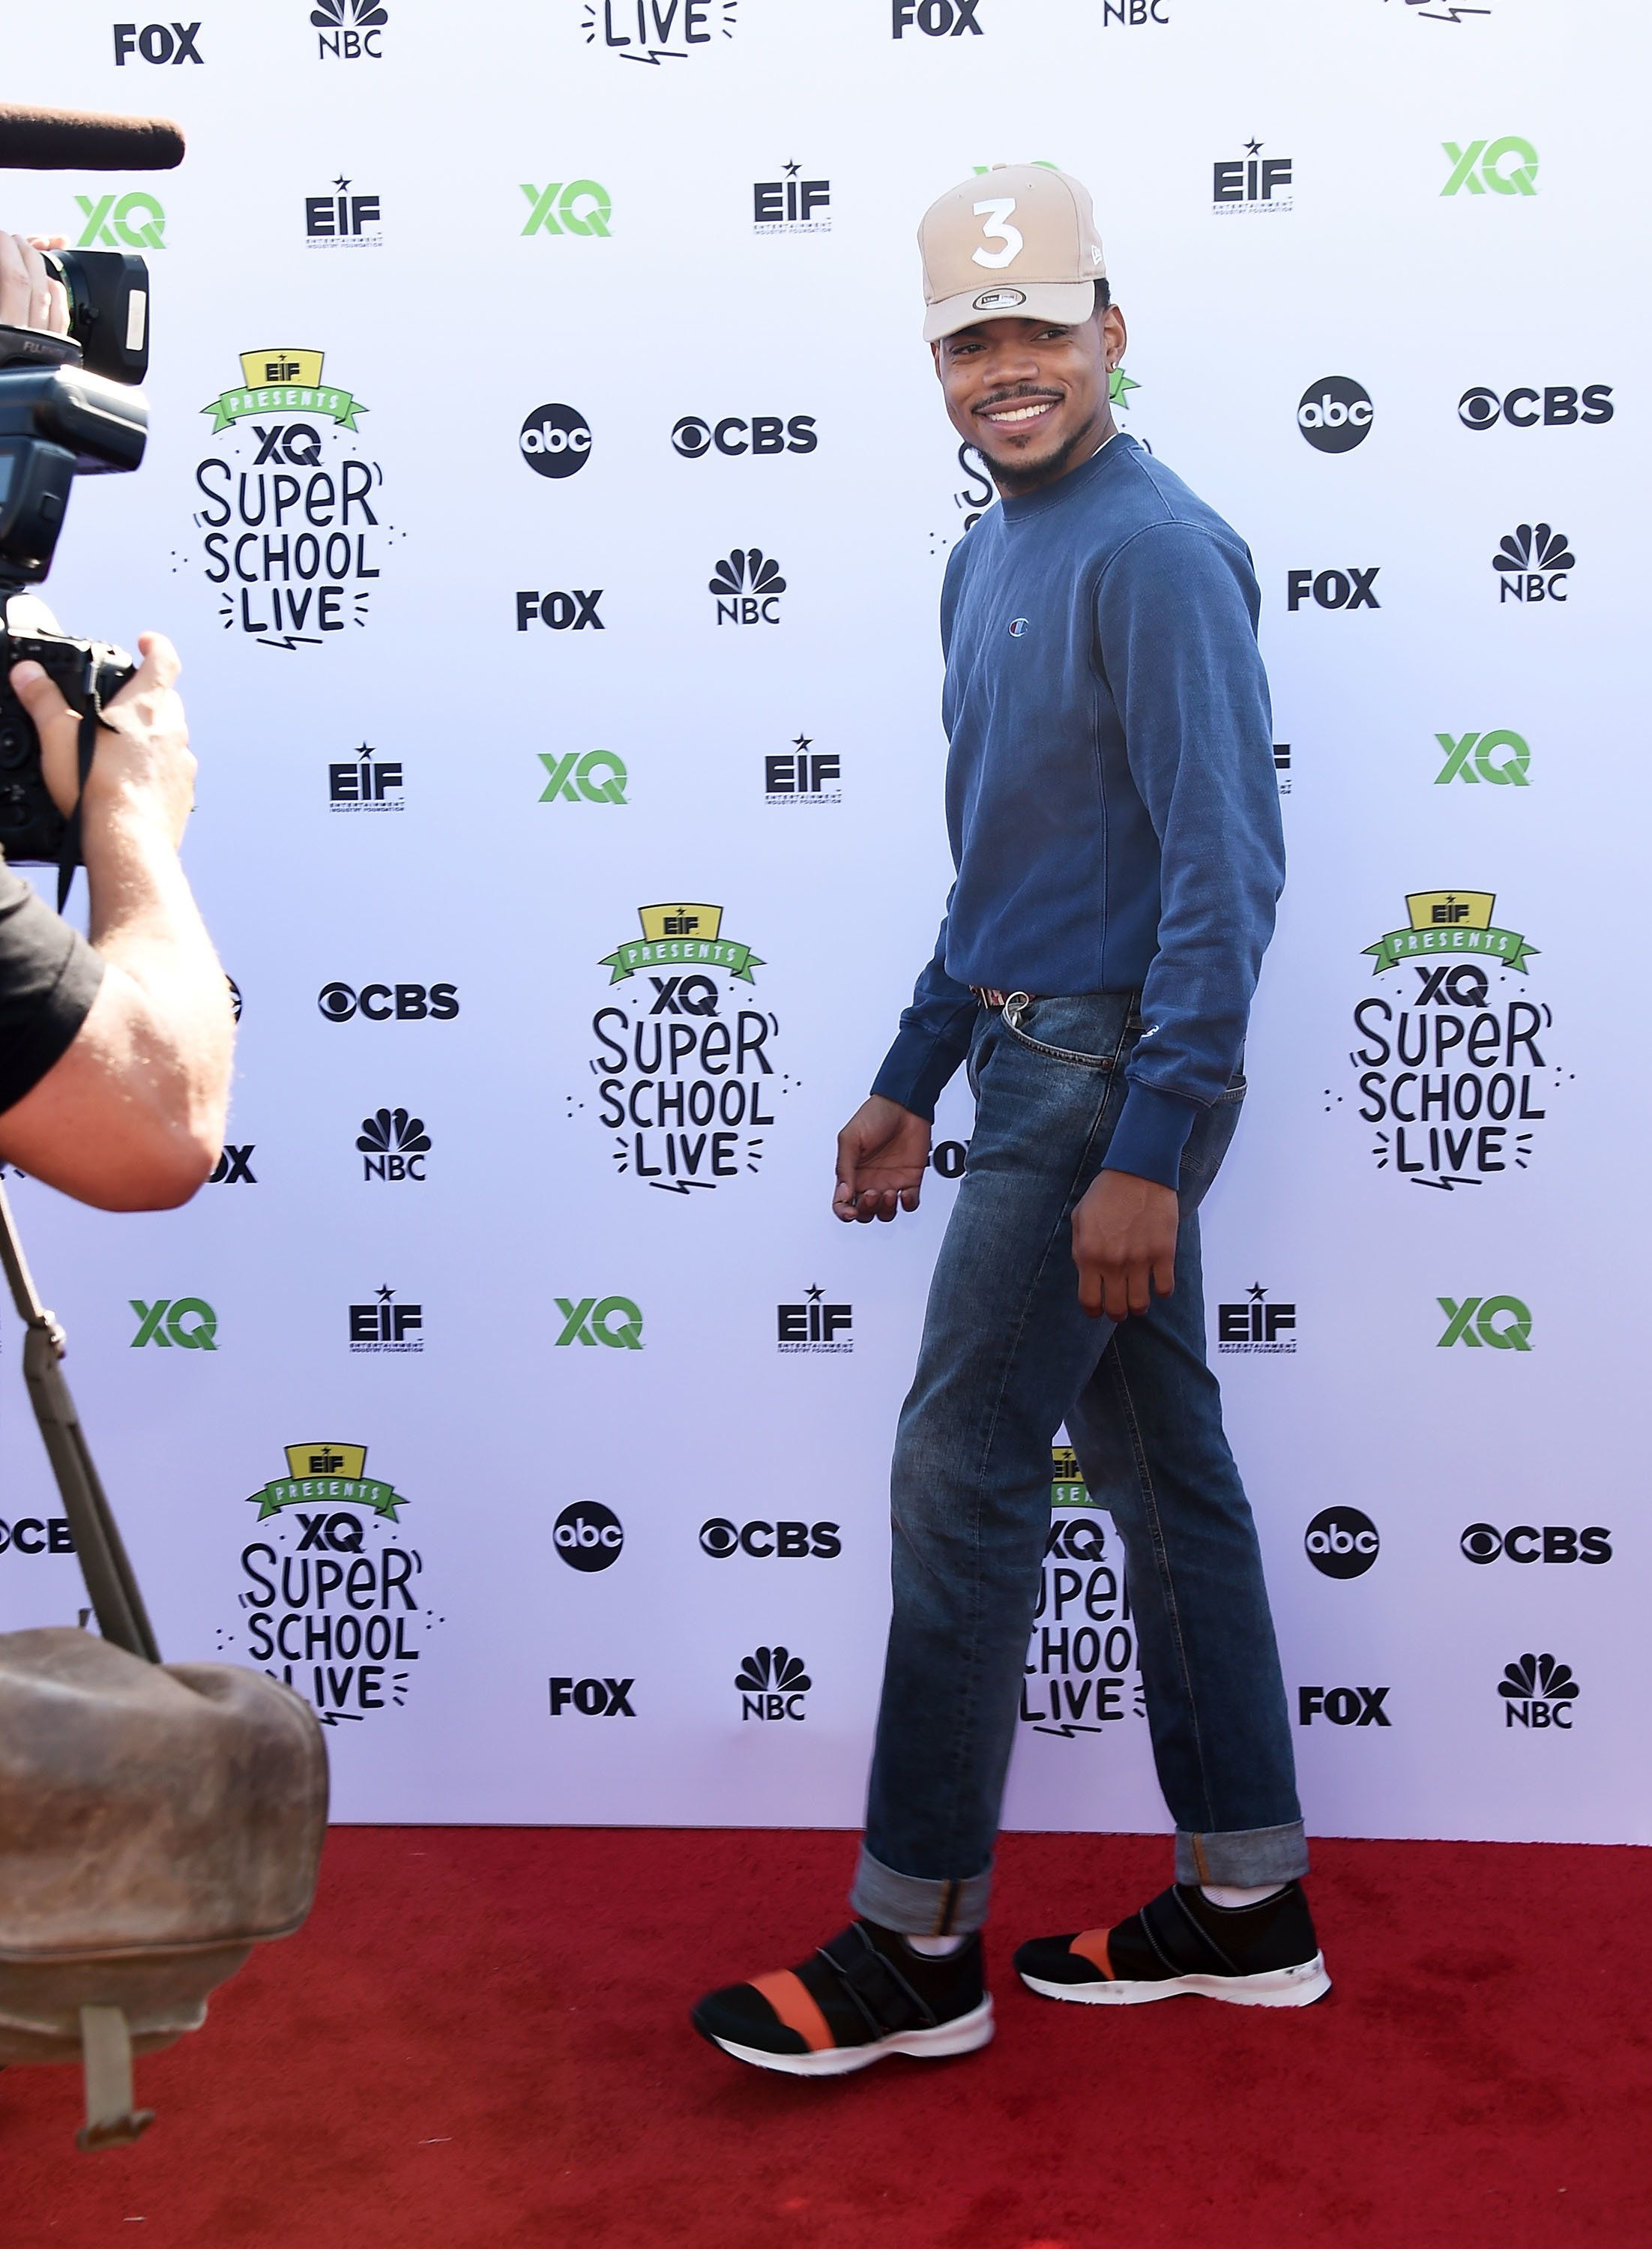 SANTA MONICA, CA - SEPTEMBER 08:  Chance the Rapper arrives at the EIF Presents: XQ Super School Live event at The Barker Hanger on September 8, 2017 in Santa Monica, California.  (Photo by Amanda Edwards/WireImage)